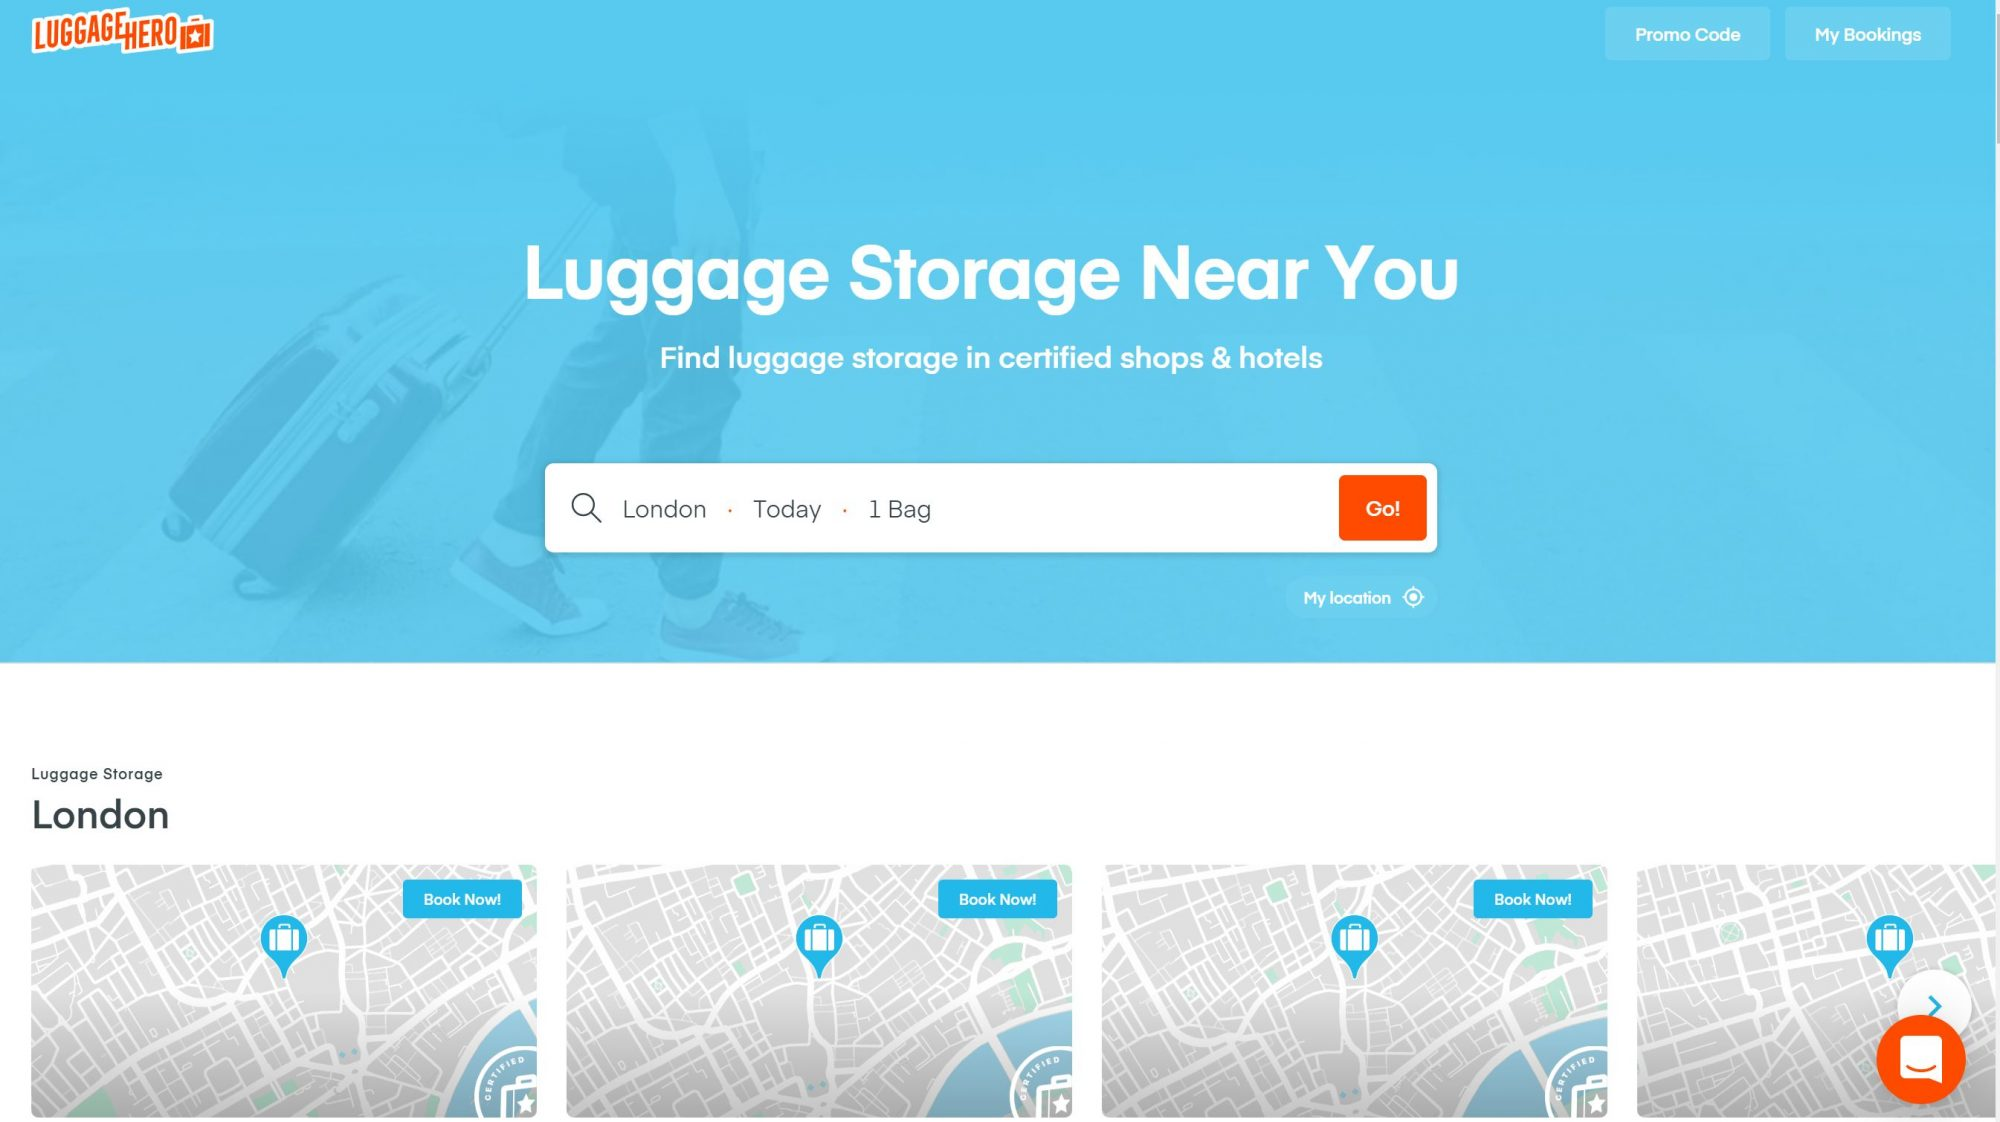 LuggageHero website screenshot for luggage storage assistance